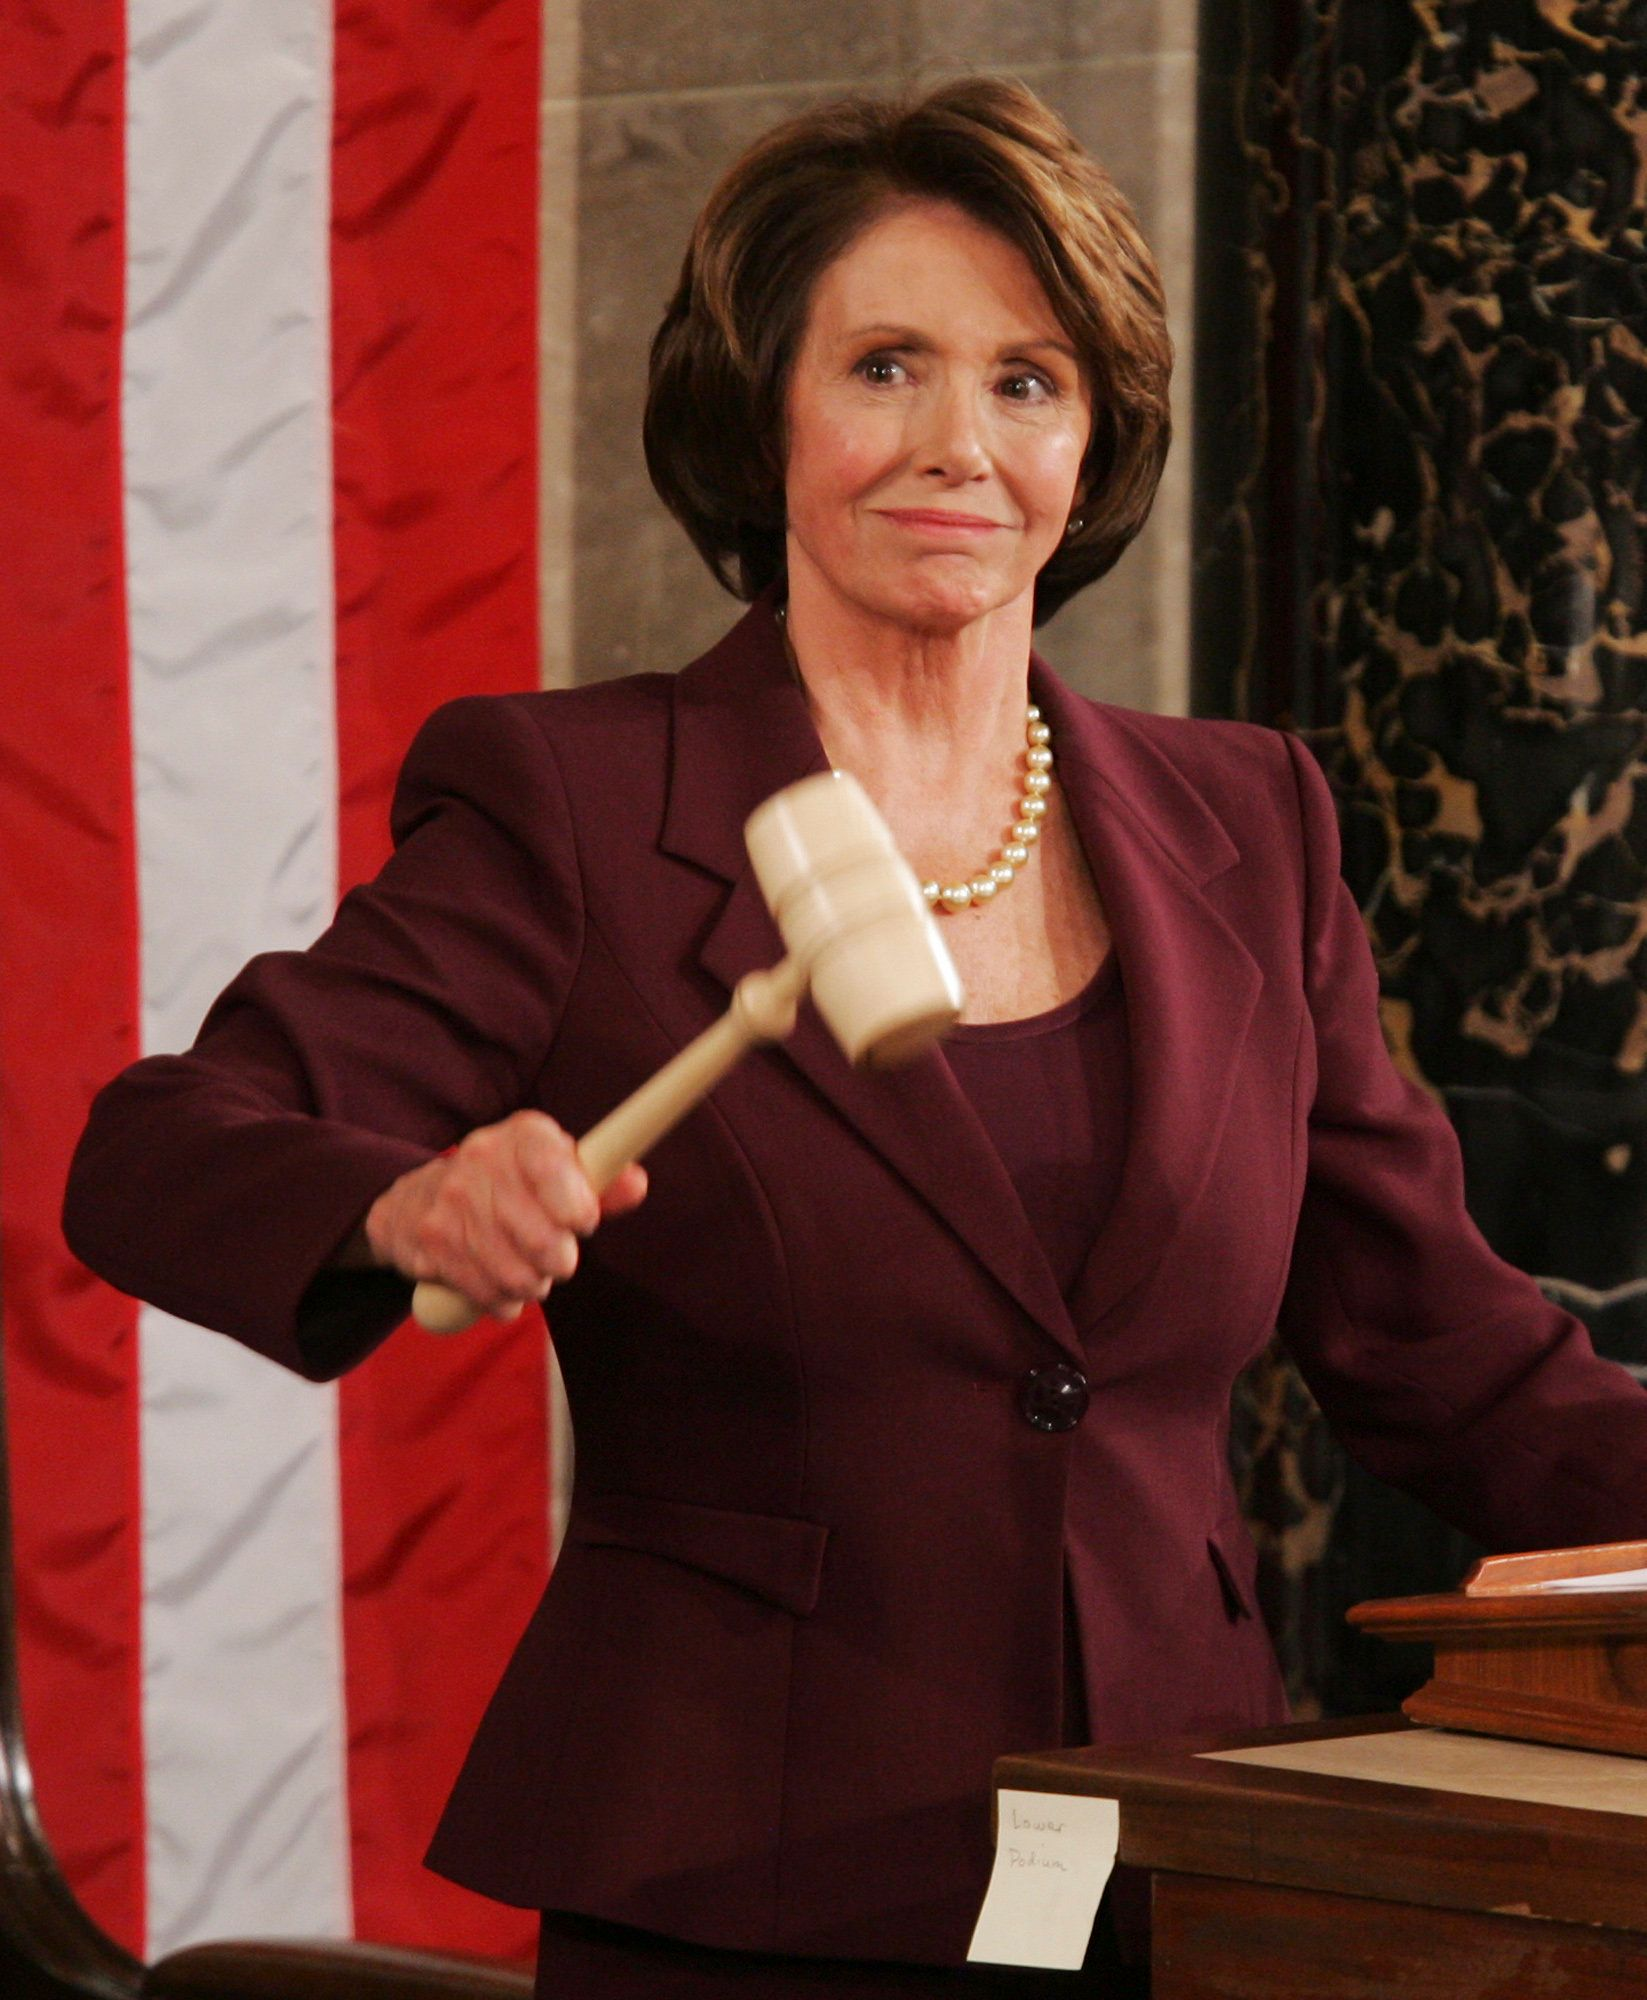 Rep. Nancy Pelosi (D-Calif.) wields the gavel in 2007 as the first woman to serve as speaker of the